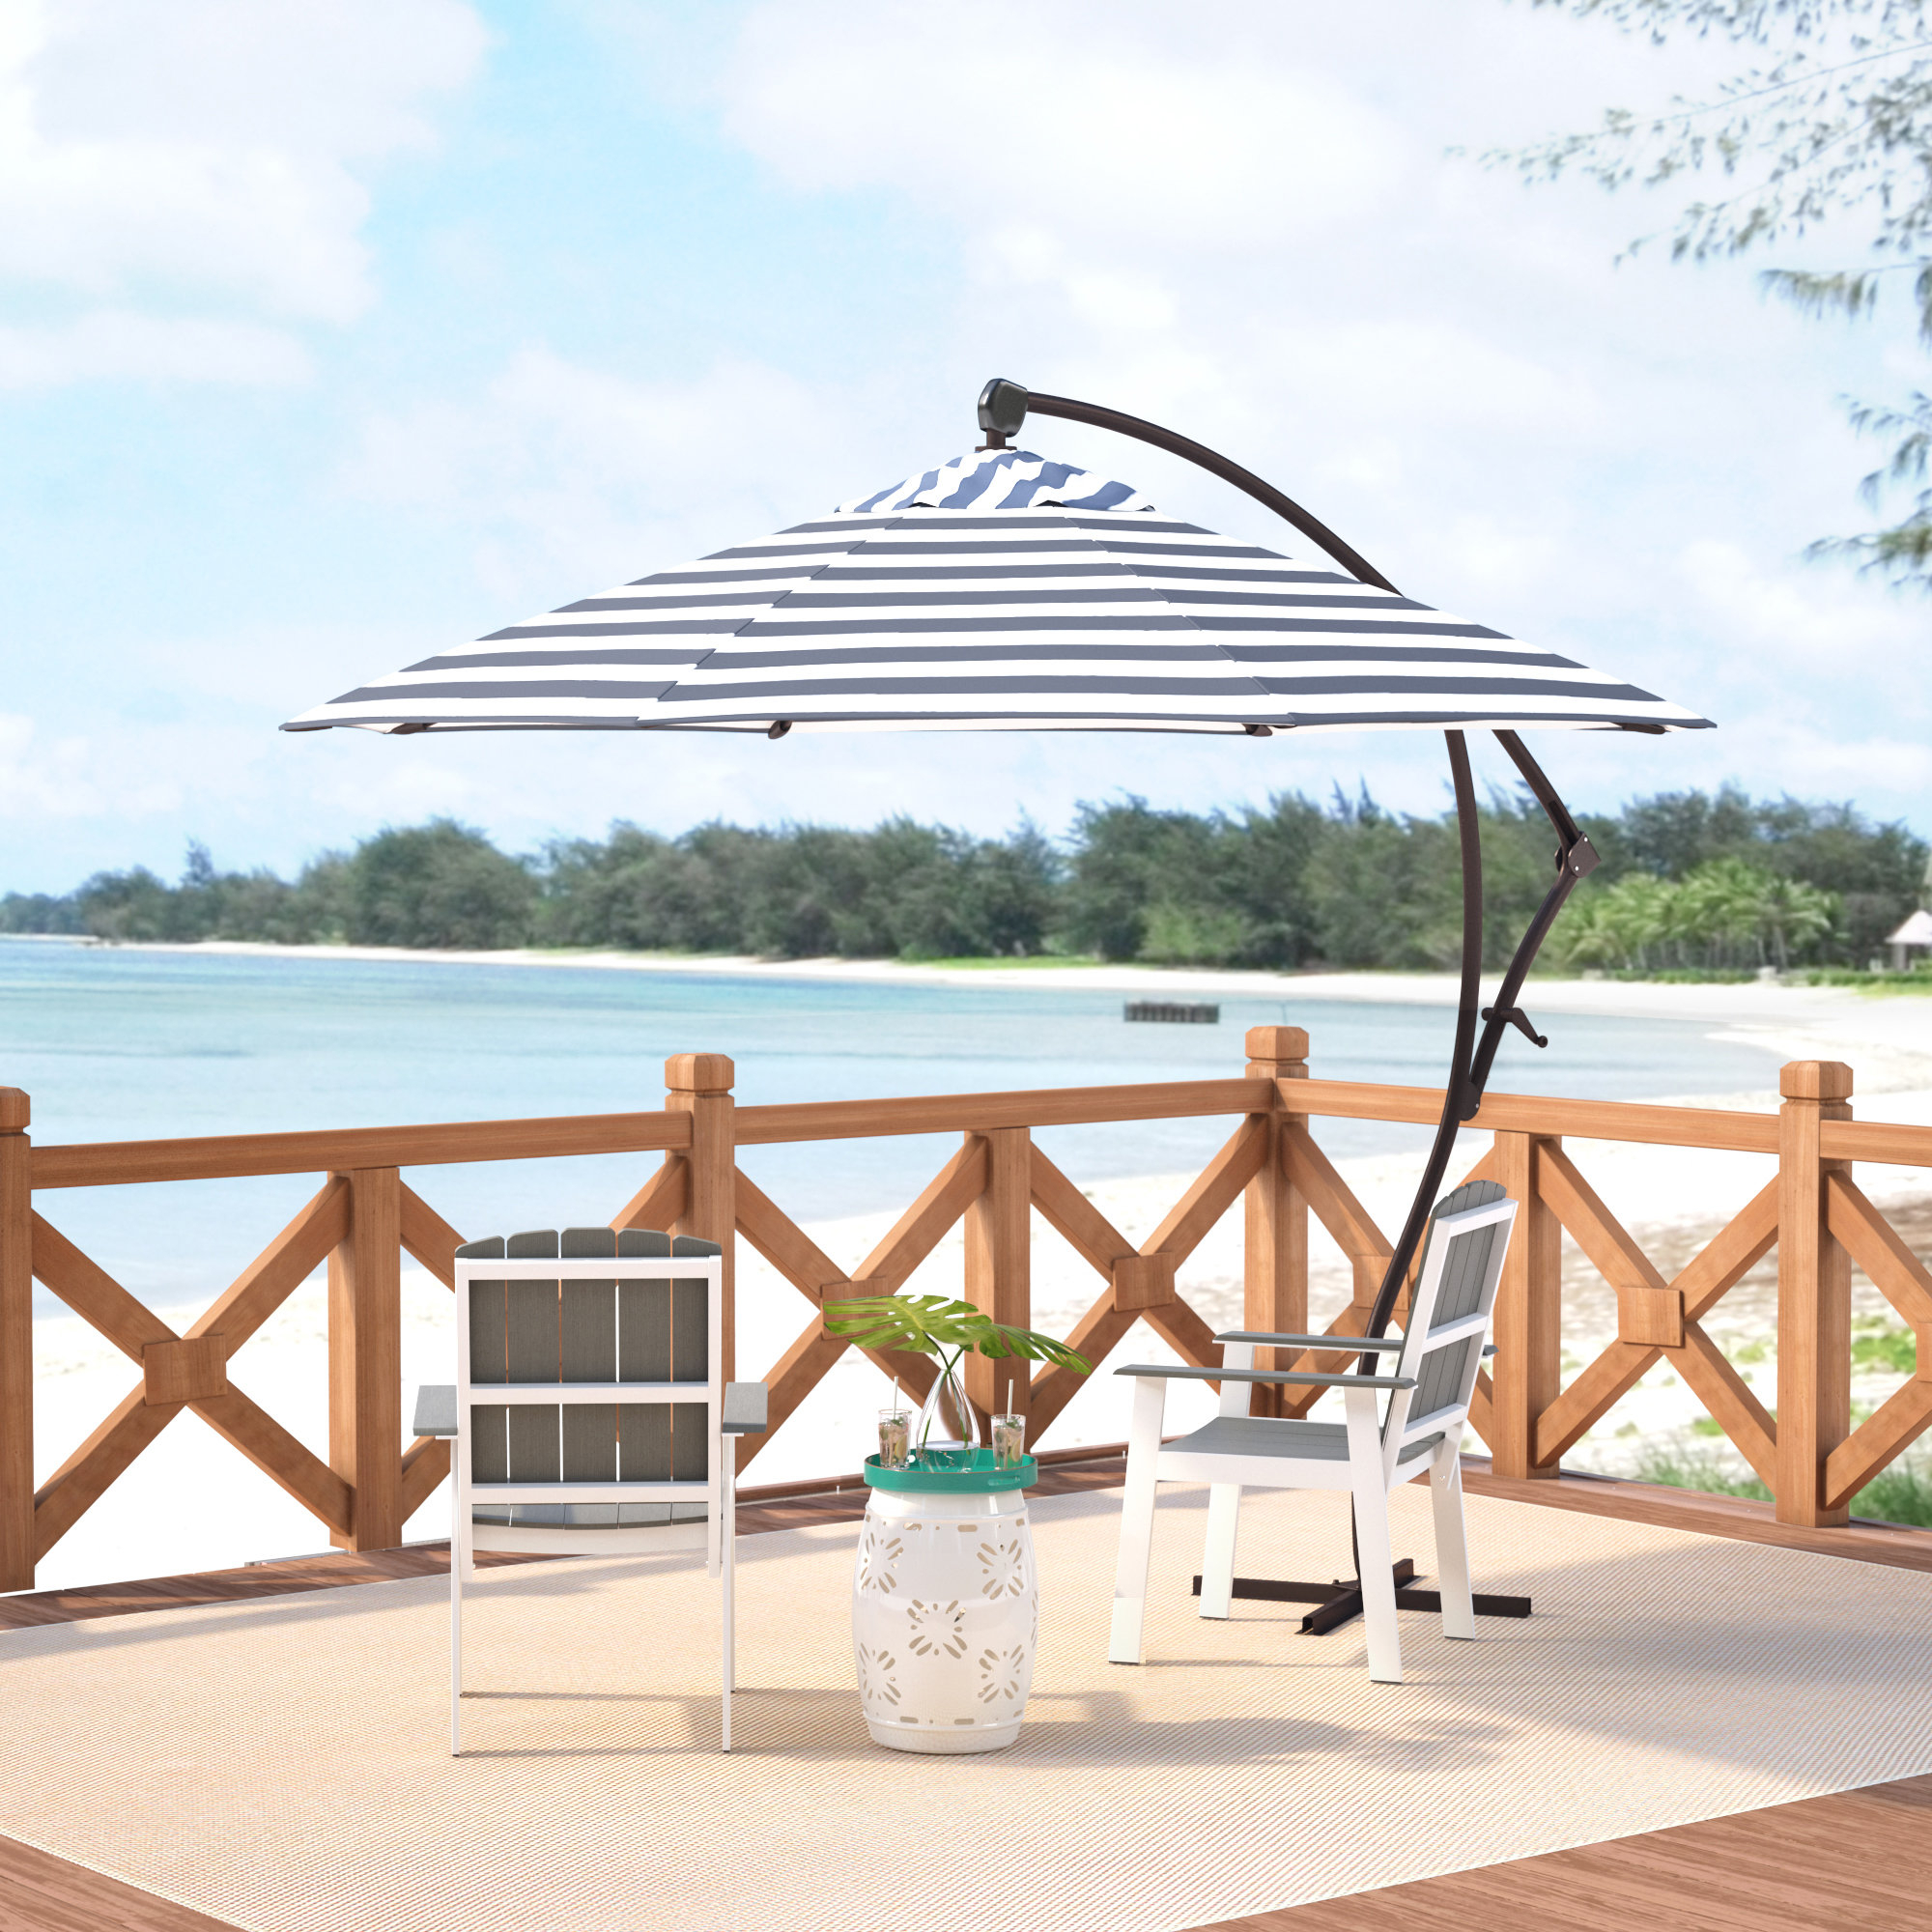 Fashionable Ryant 9' Cantilever Umbrella With Justis Cantilever Umbrellas (View 14 of 20)